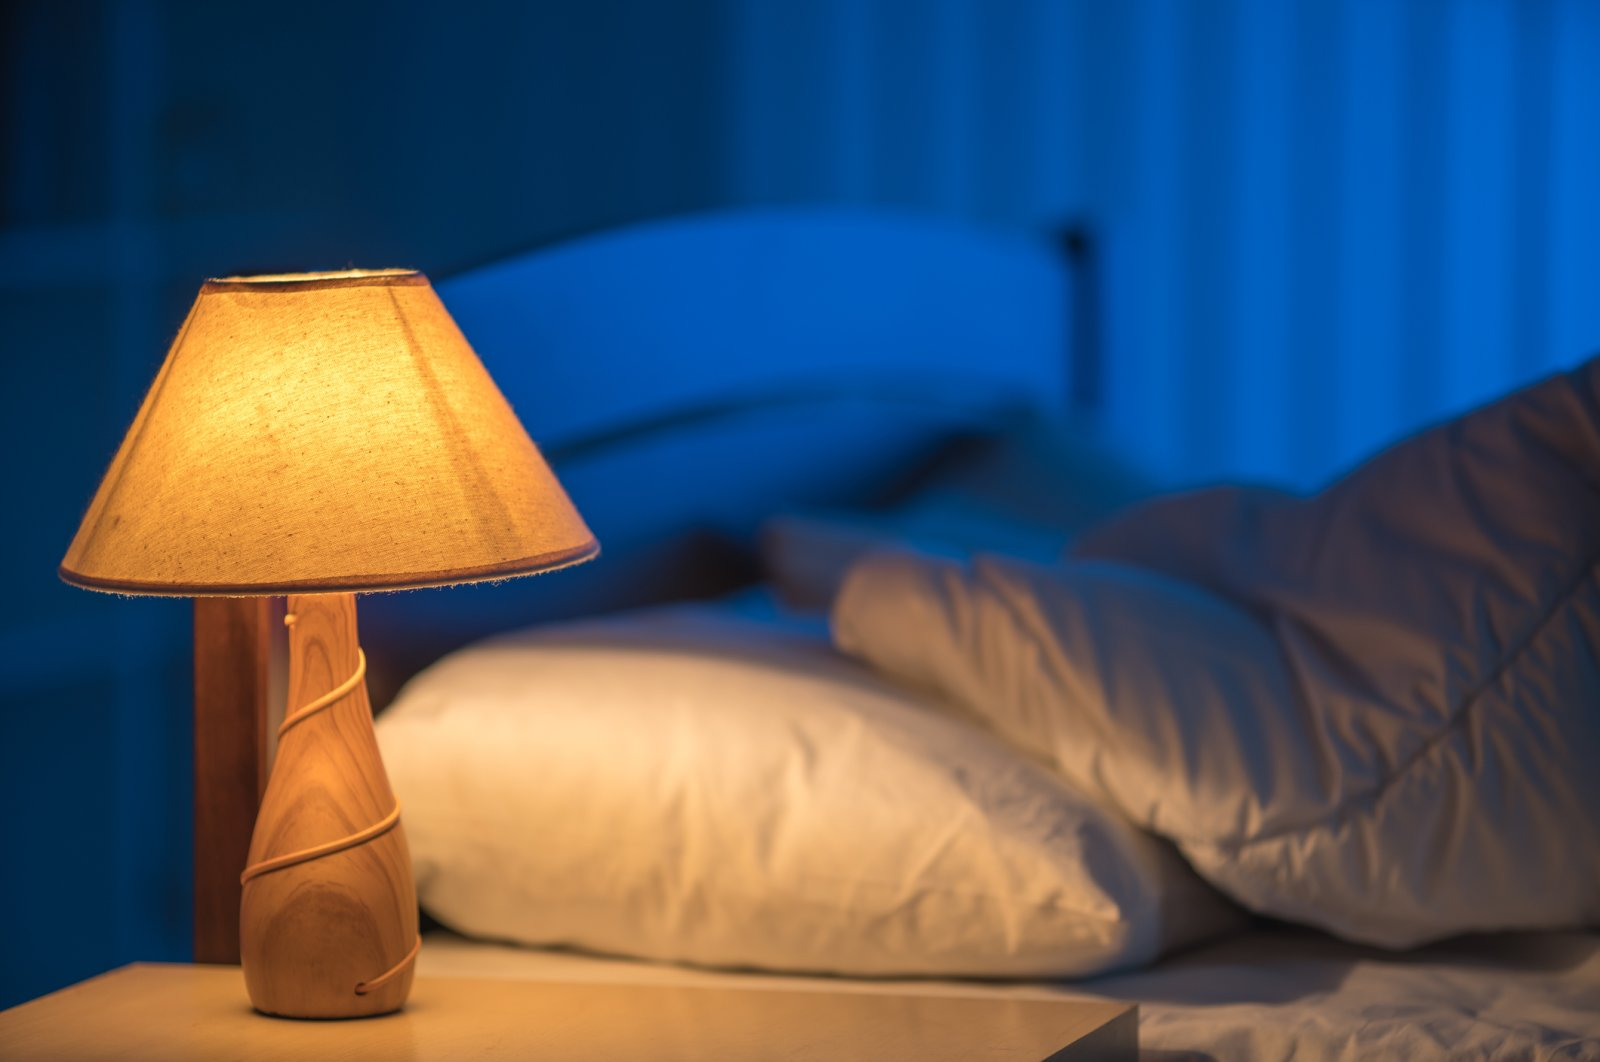 An earlier bedtime could help us shrink our carbon footprint. (iStock Photo)